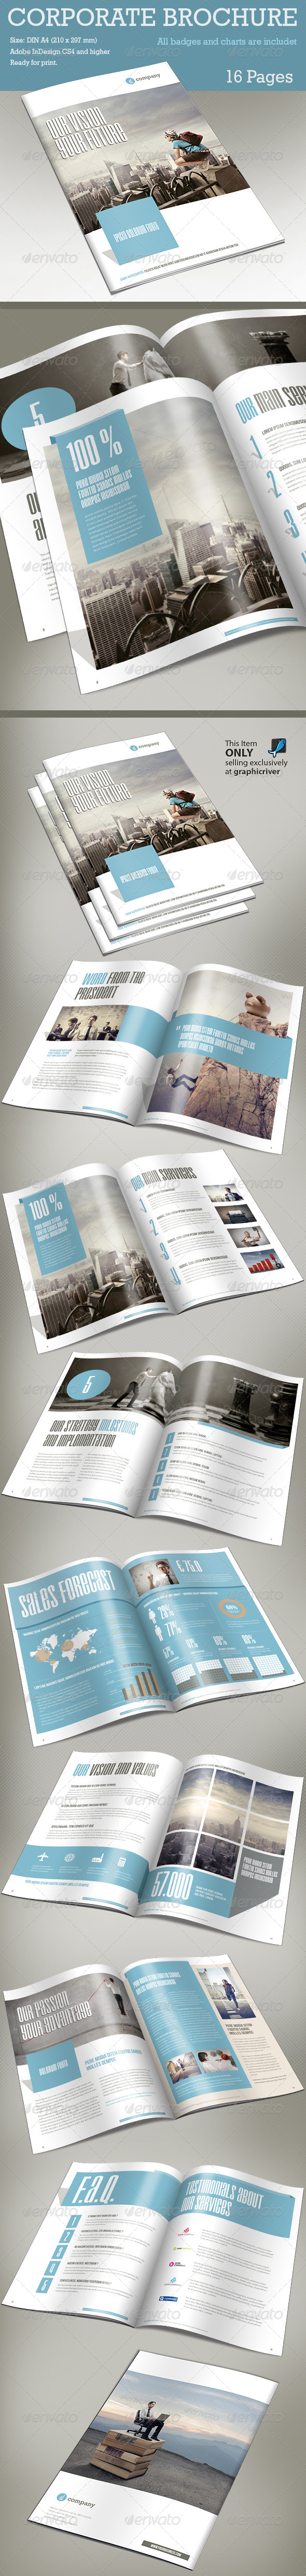 GraphicRiver Corporate Brochure Vol 3 5839804